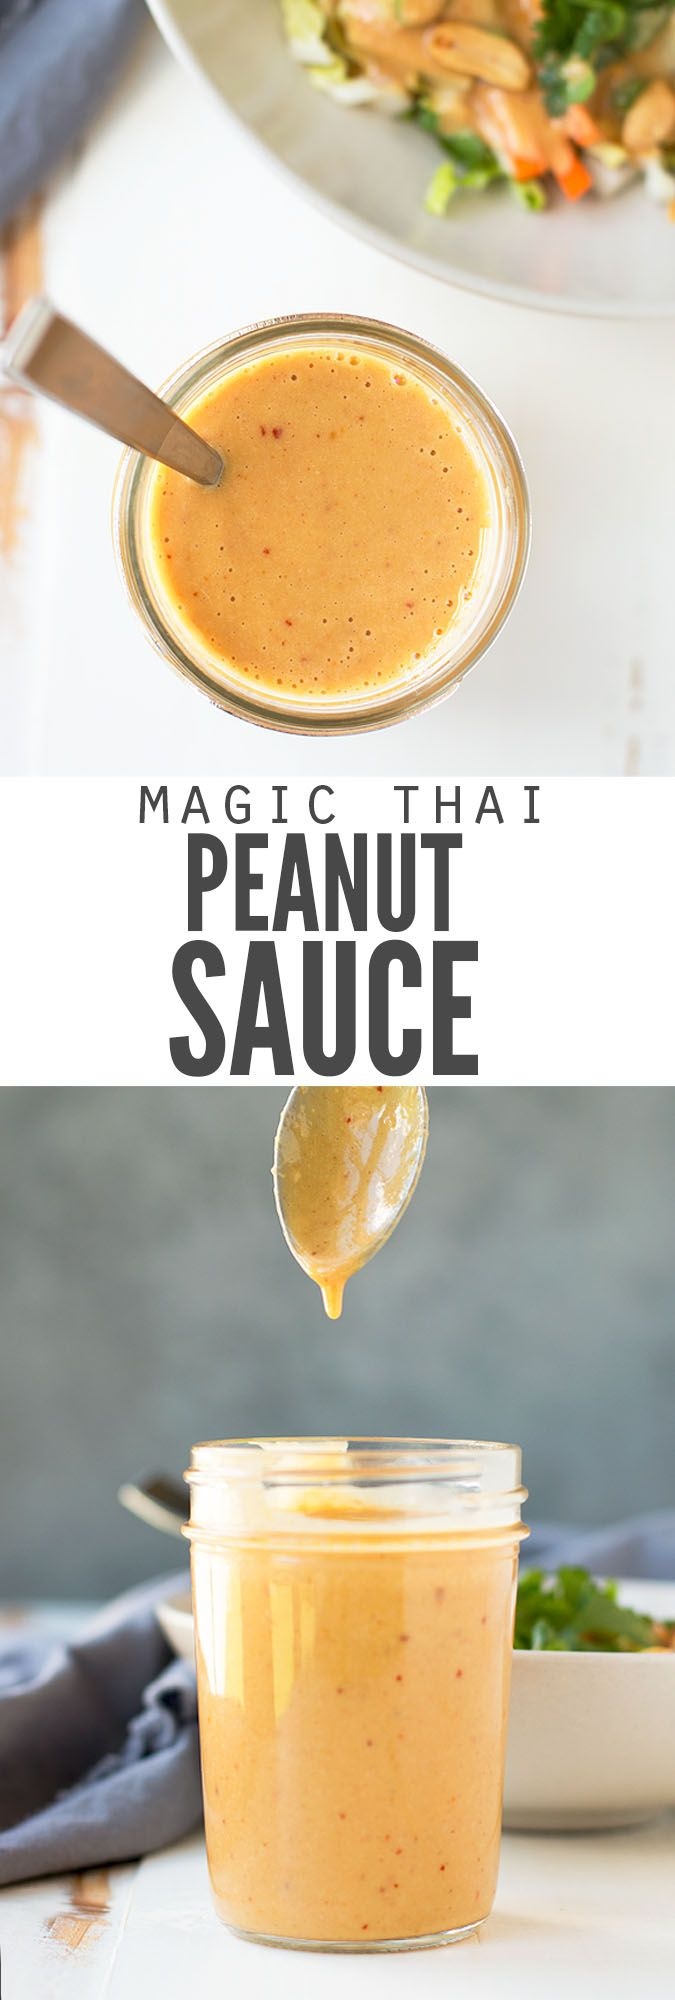 Ridiculously easy thai peanut sauce recipe that's slightly spicy, made in the blender and doubles as a dressing. Add to stir-fry, noodles, salads and satay! :: DontWastetheCrumbs.com